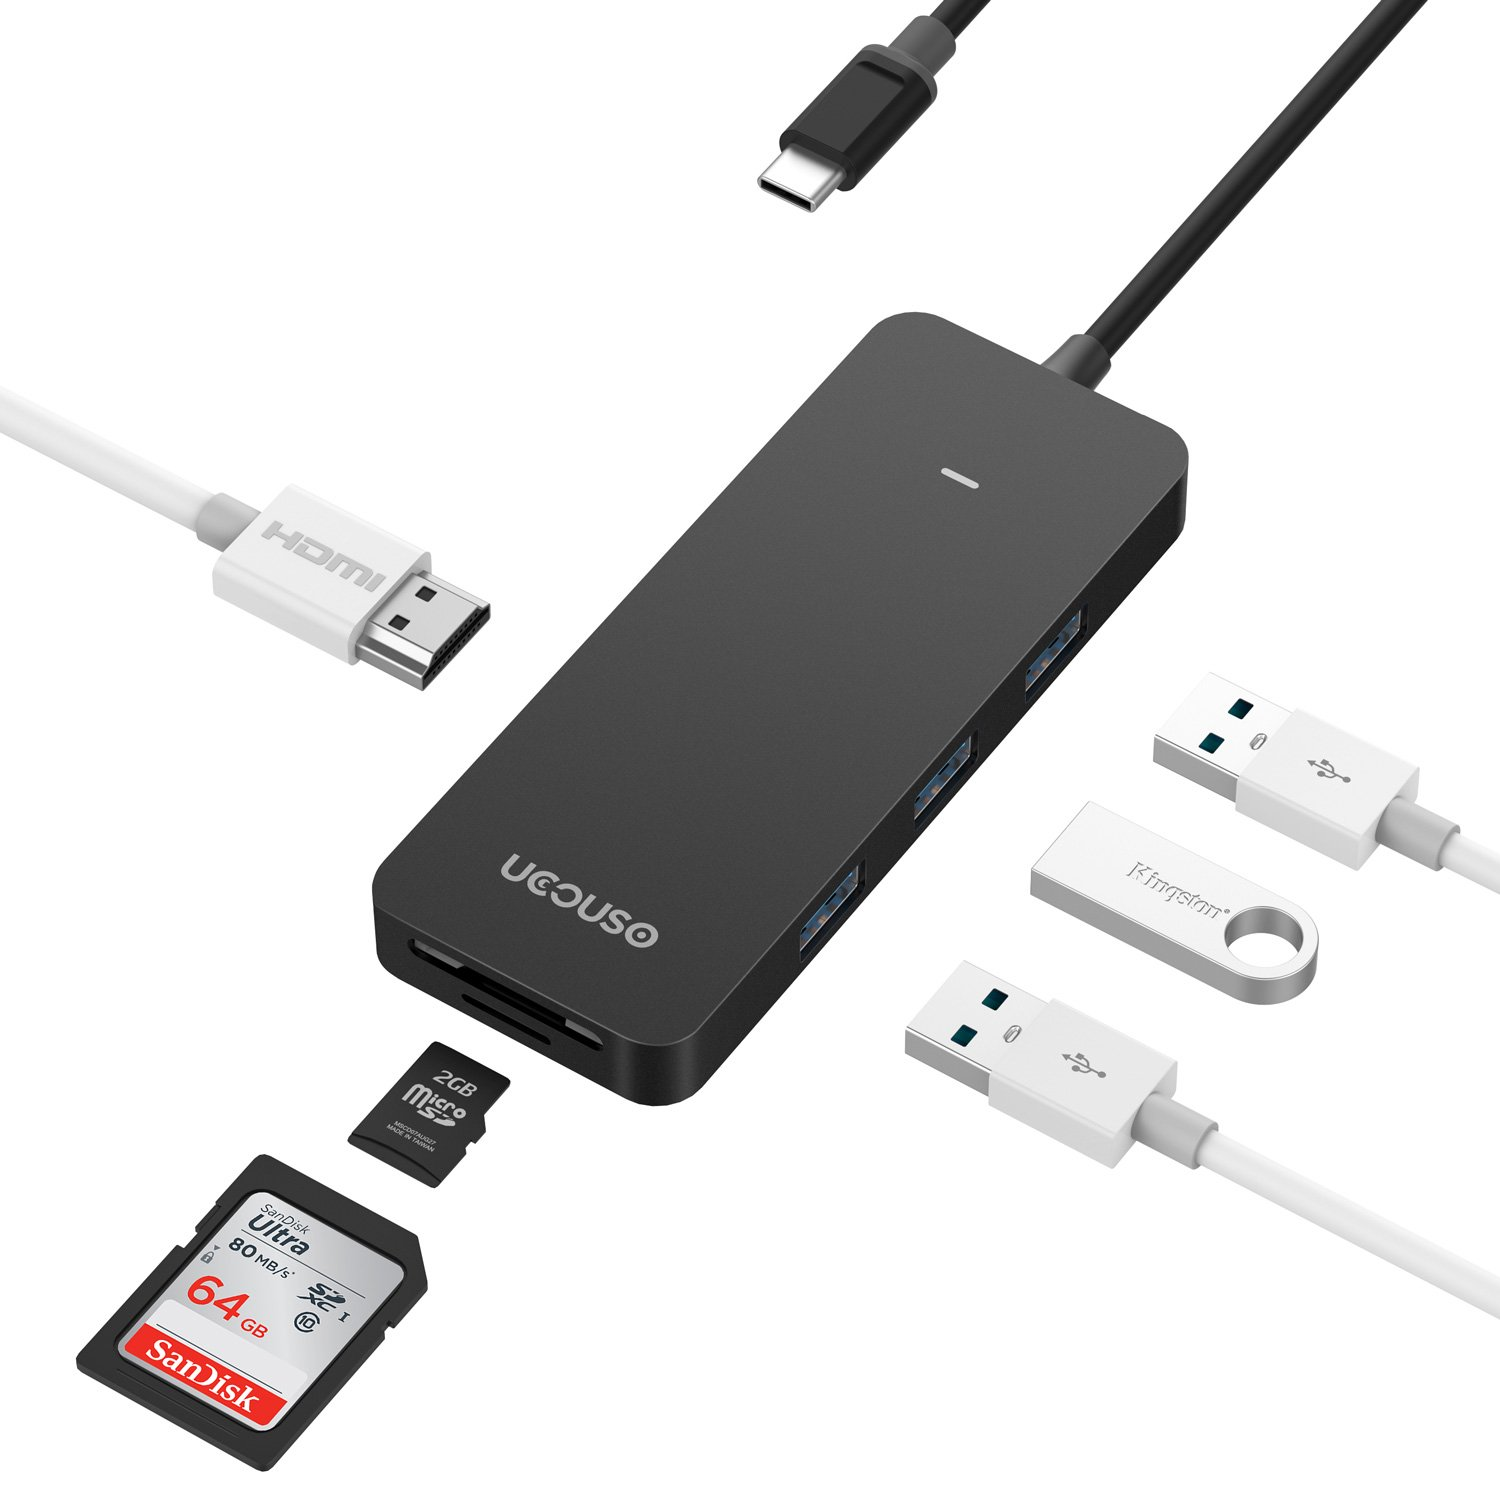 USB C HUB,USB C to 4K HDMI Hub 3840X2160P@30HZ with 3 USB 3.0 Ports 1 Type C and 1 SD/TF Card Reader Portable Type C Adapter by UCOUSO(Black)